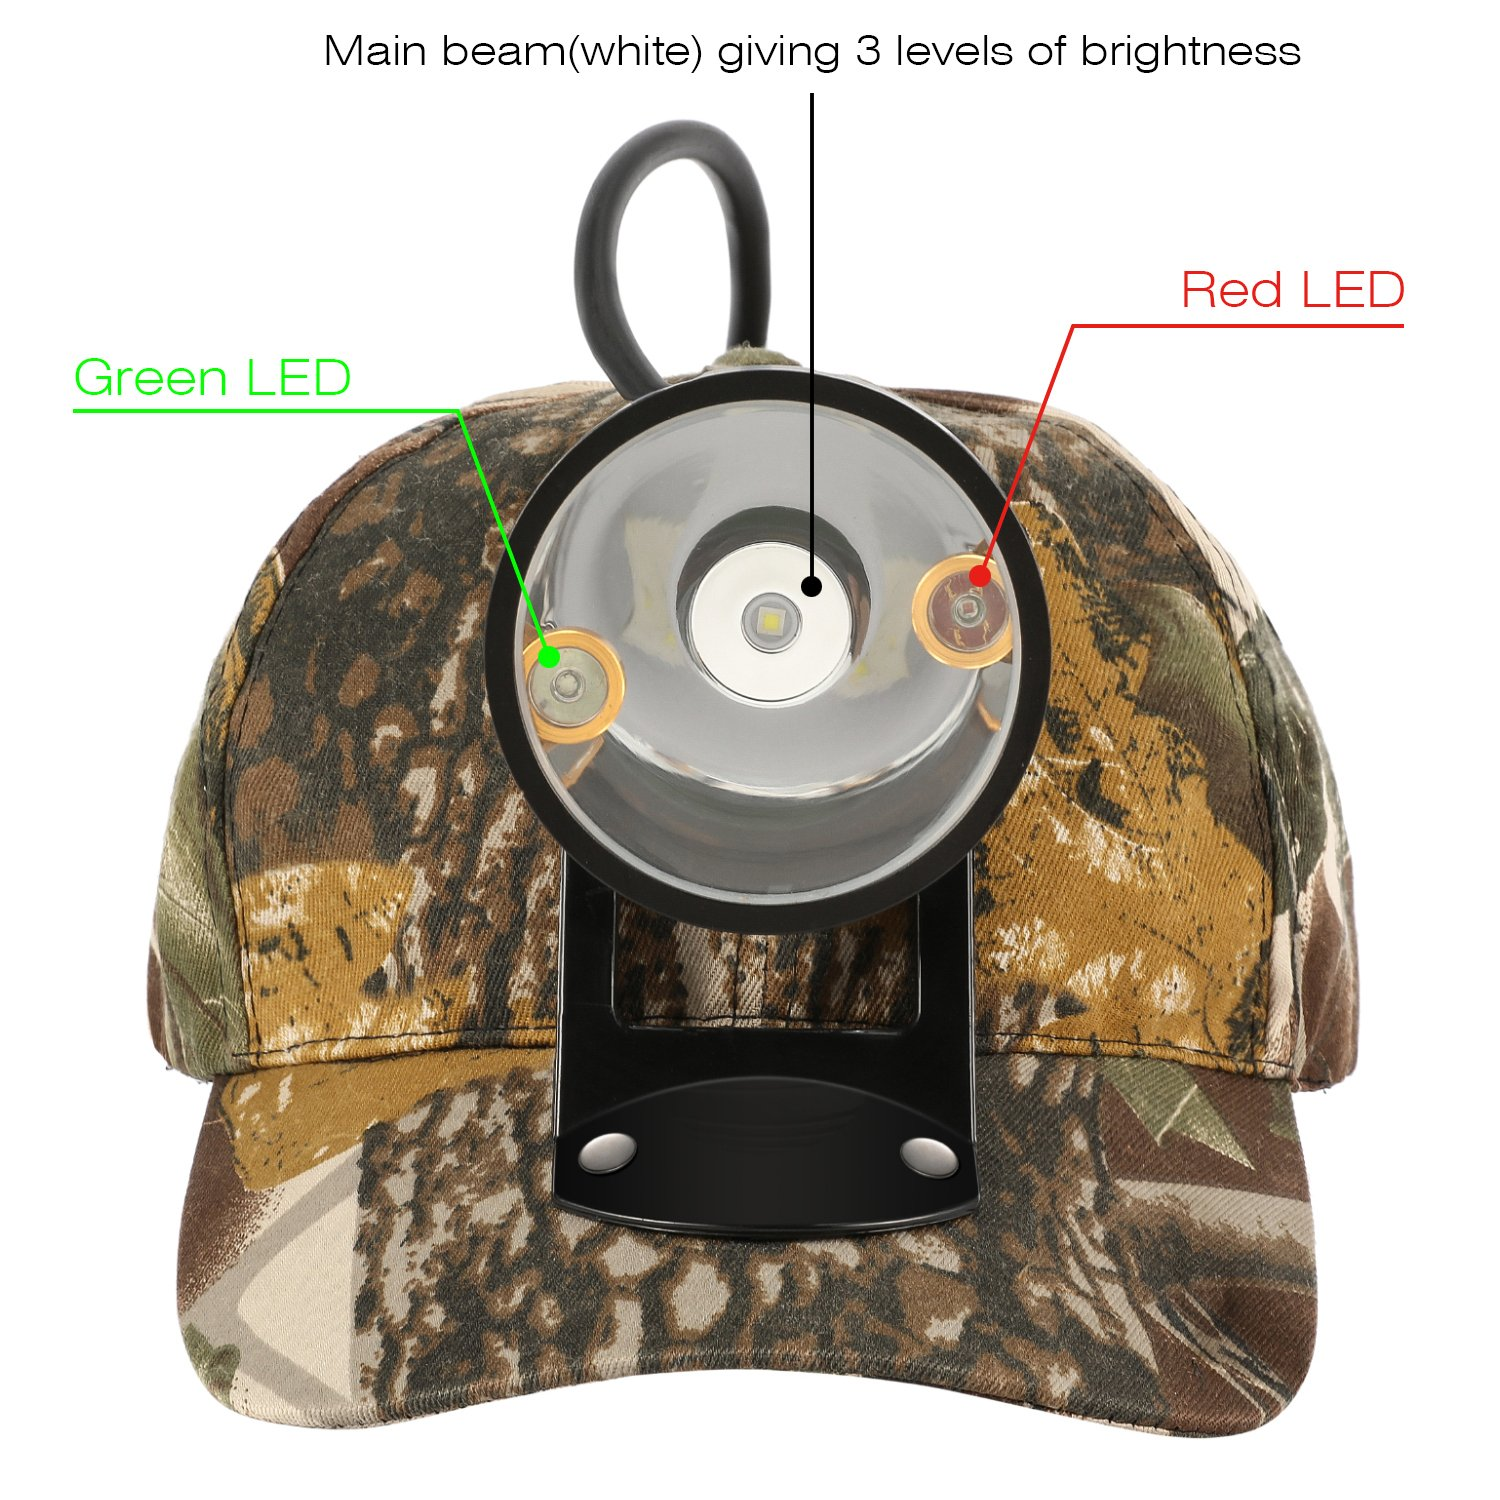 Kohree CREE 80000 LUX LED Coyote Hog Coon Hunting Light